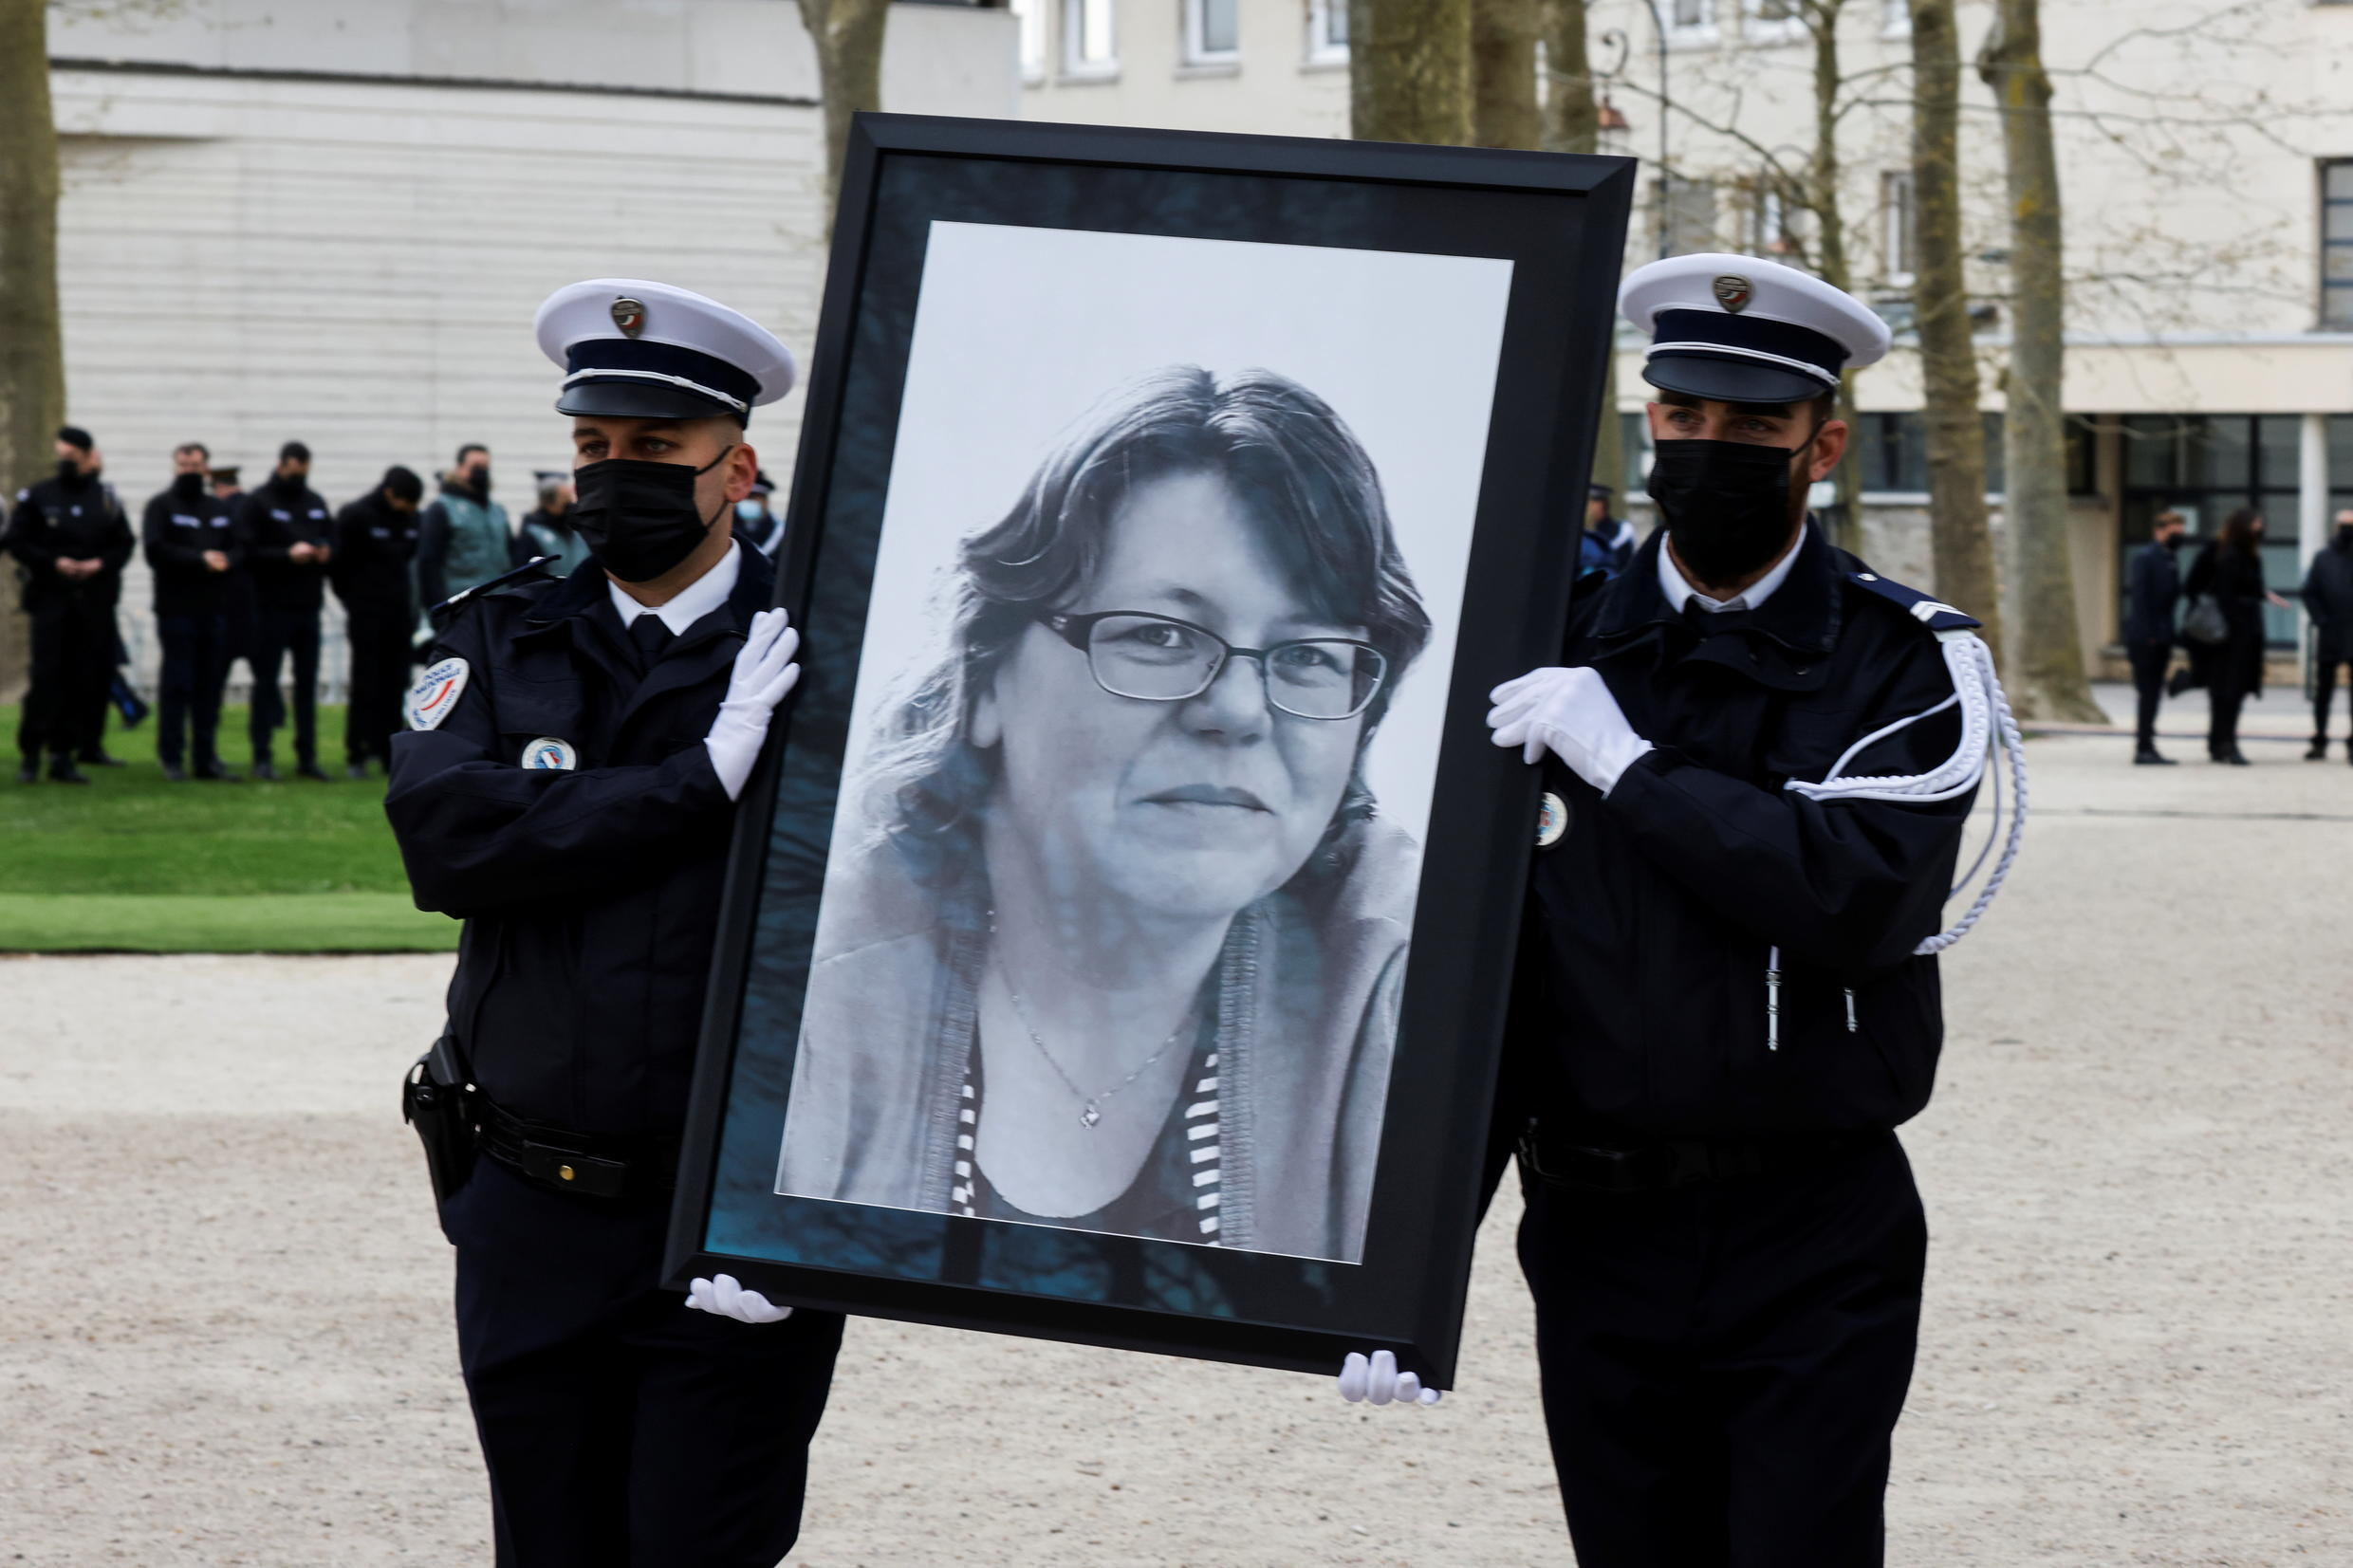 2021-04-30T082901Z_147838097_RC286N96IWZD_RTRMADP_3_FRANCE-SECURITY-TRIBUTE